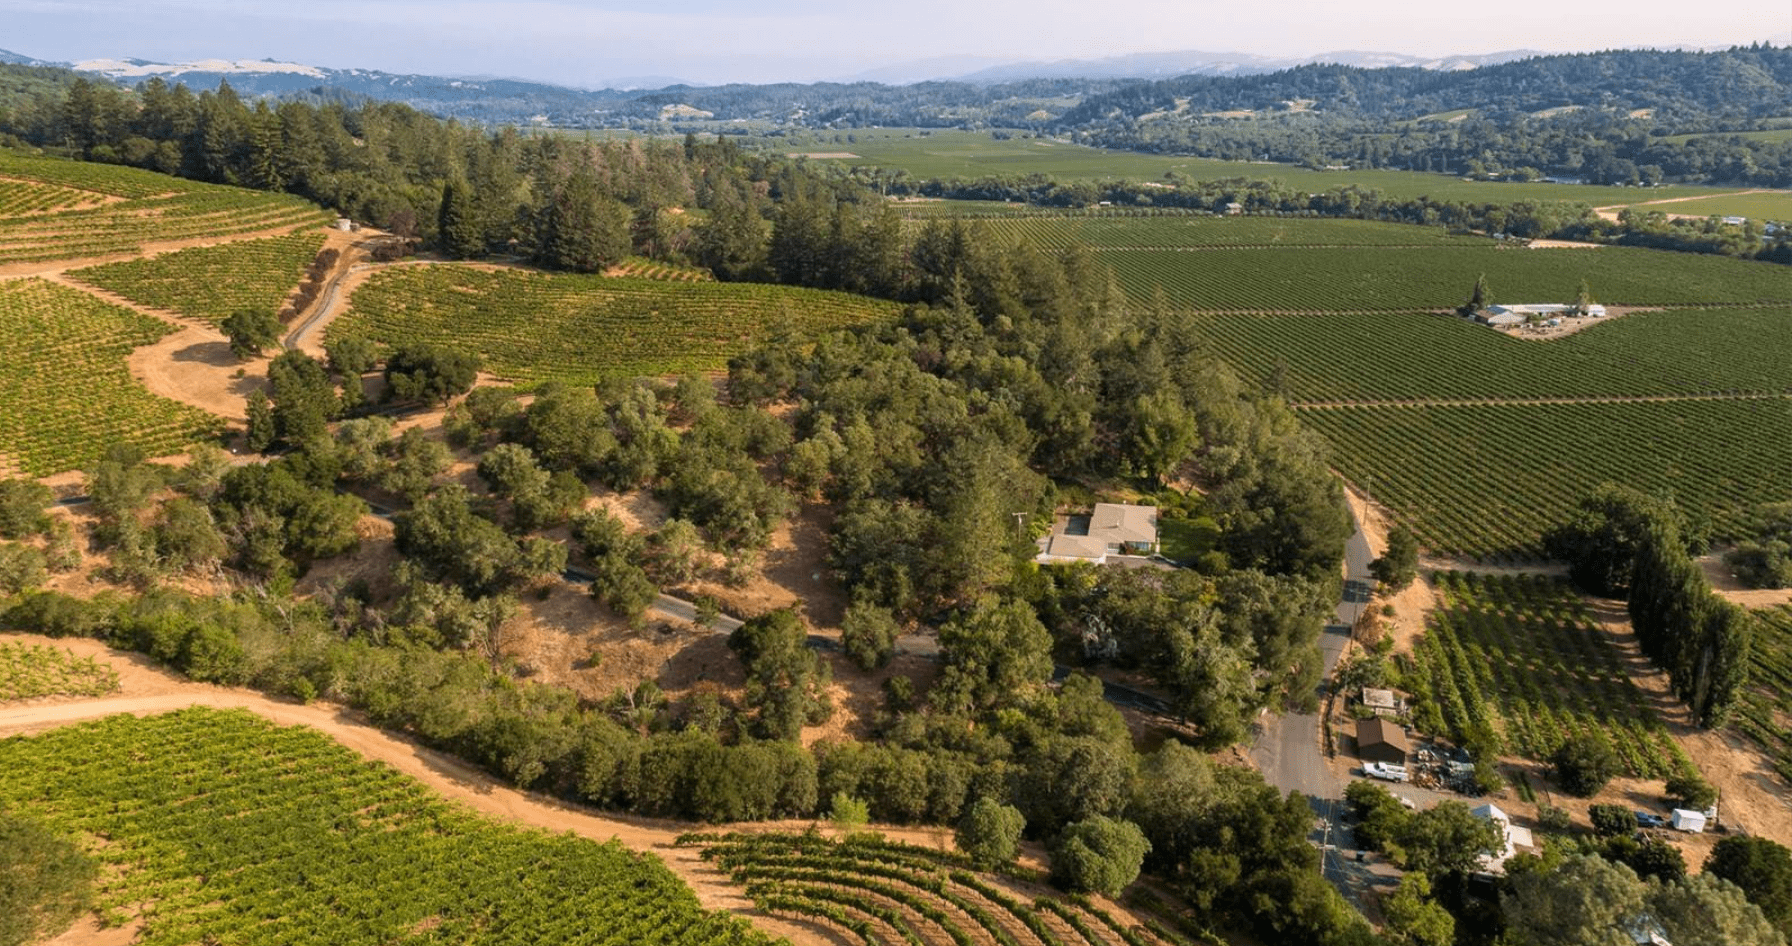 blanch ranch vineyard aerial view